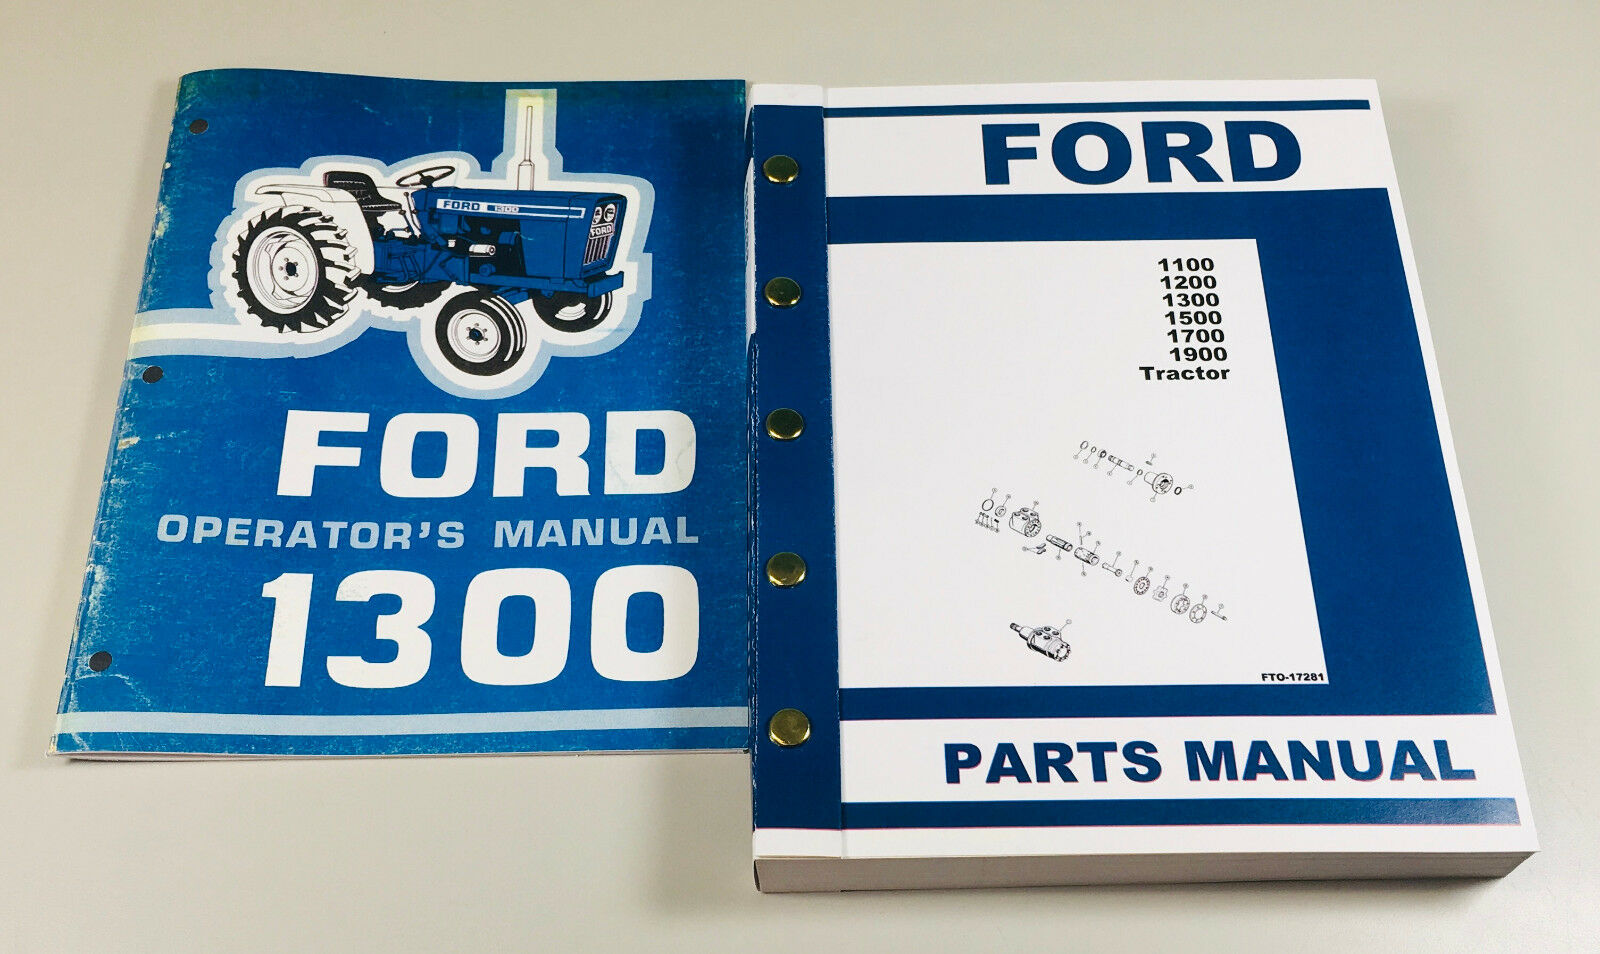 Ford 1300 Tractor Owners Operators Manual Parts Catalog